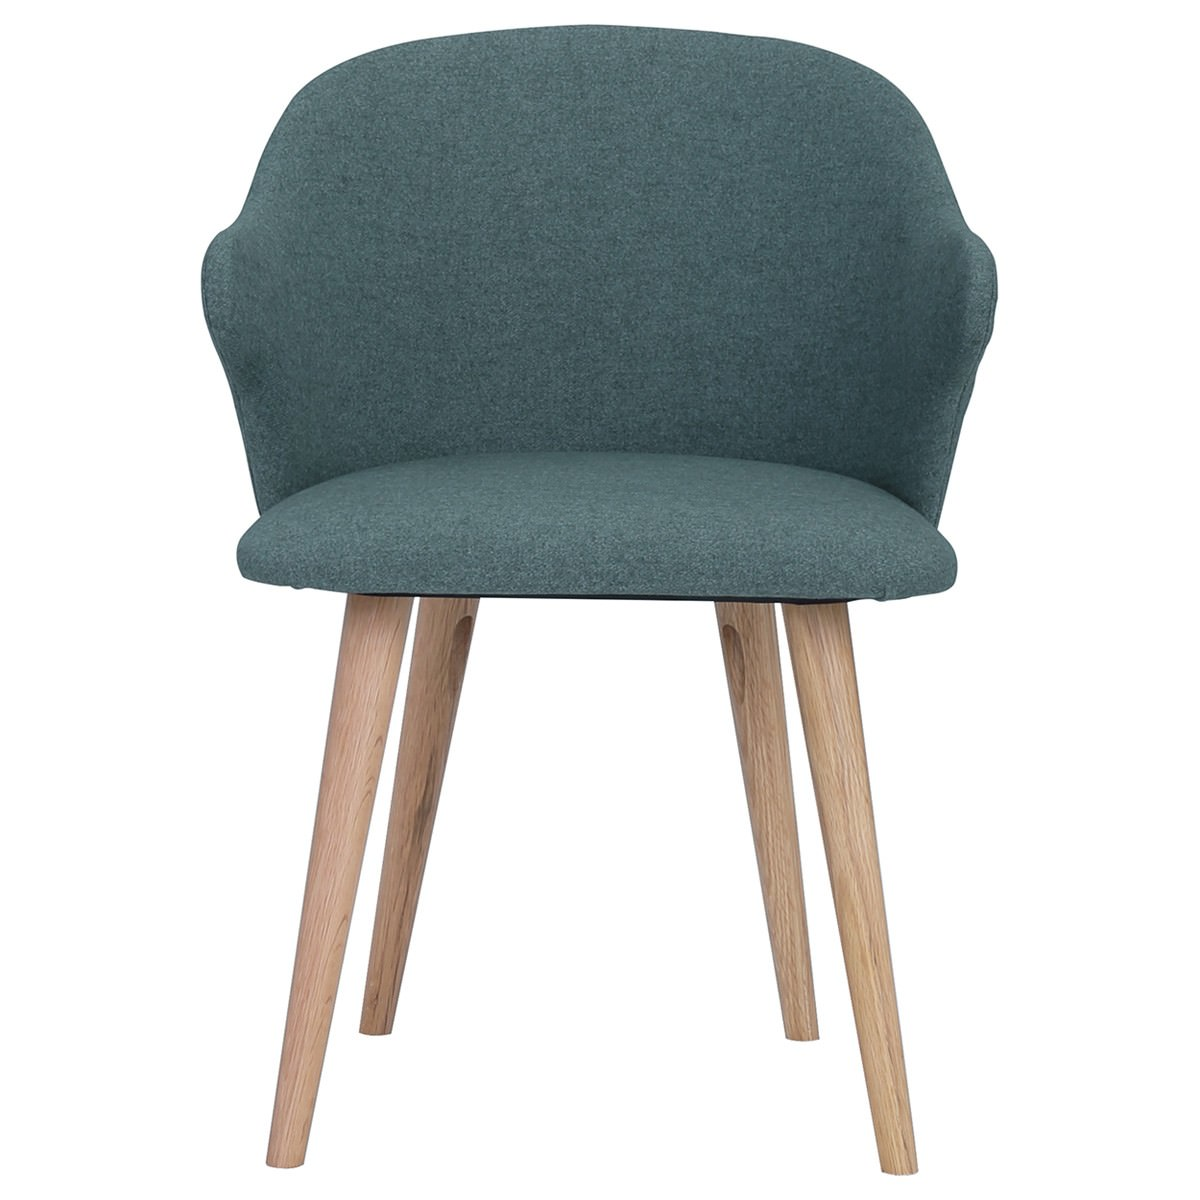 Ceyla Fabric Dining Chair, Jade / Oak